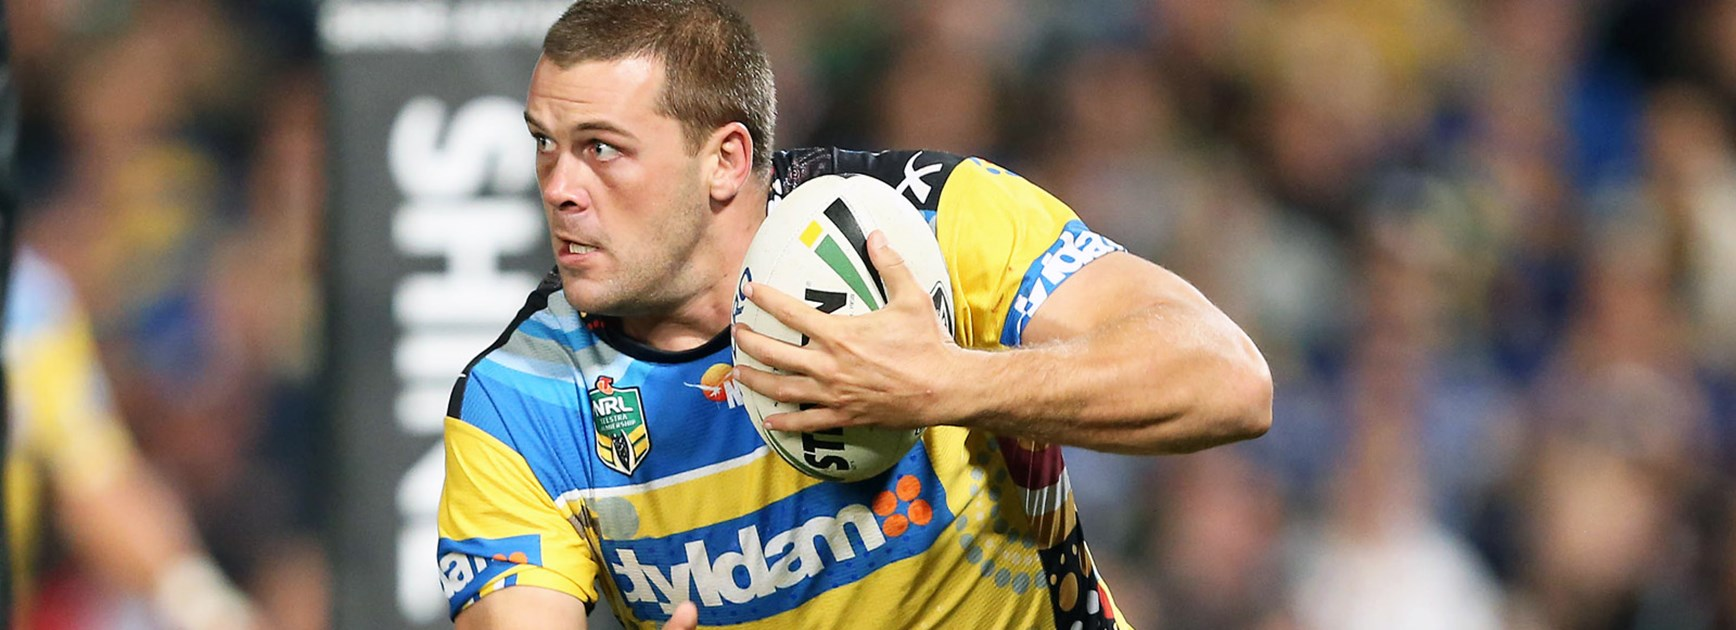 Eels prop Danny Wicks against the Rabbitohs in Round 10.